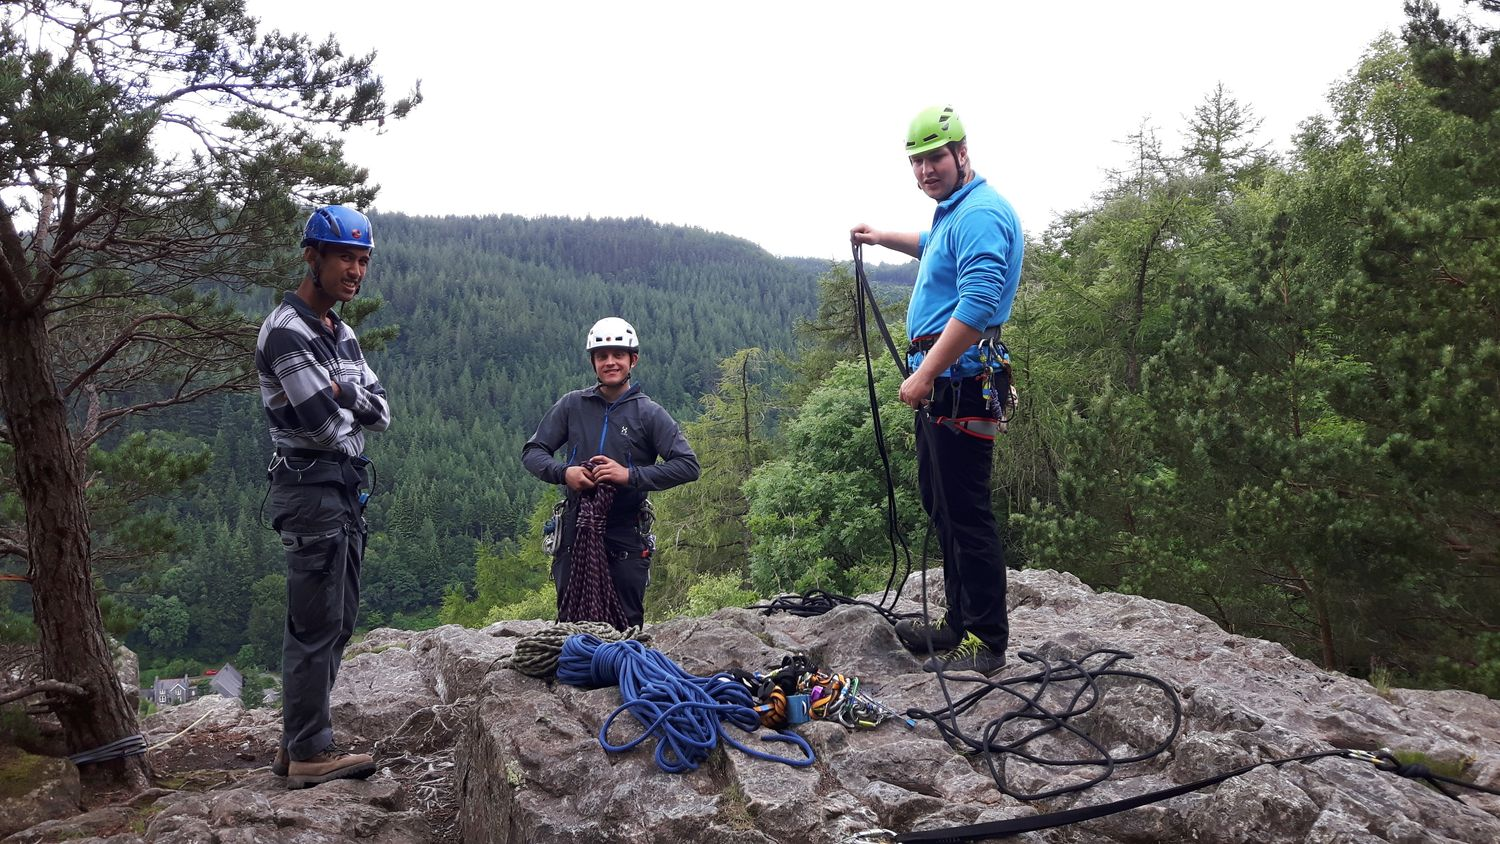 belaying at the top of a crag - chris ensoll mountain guide